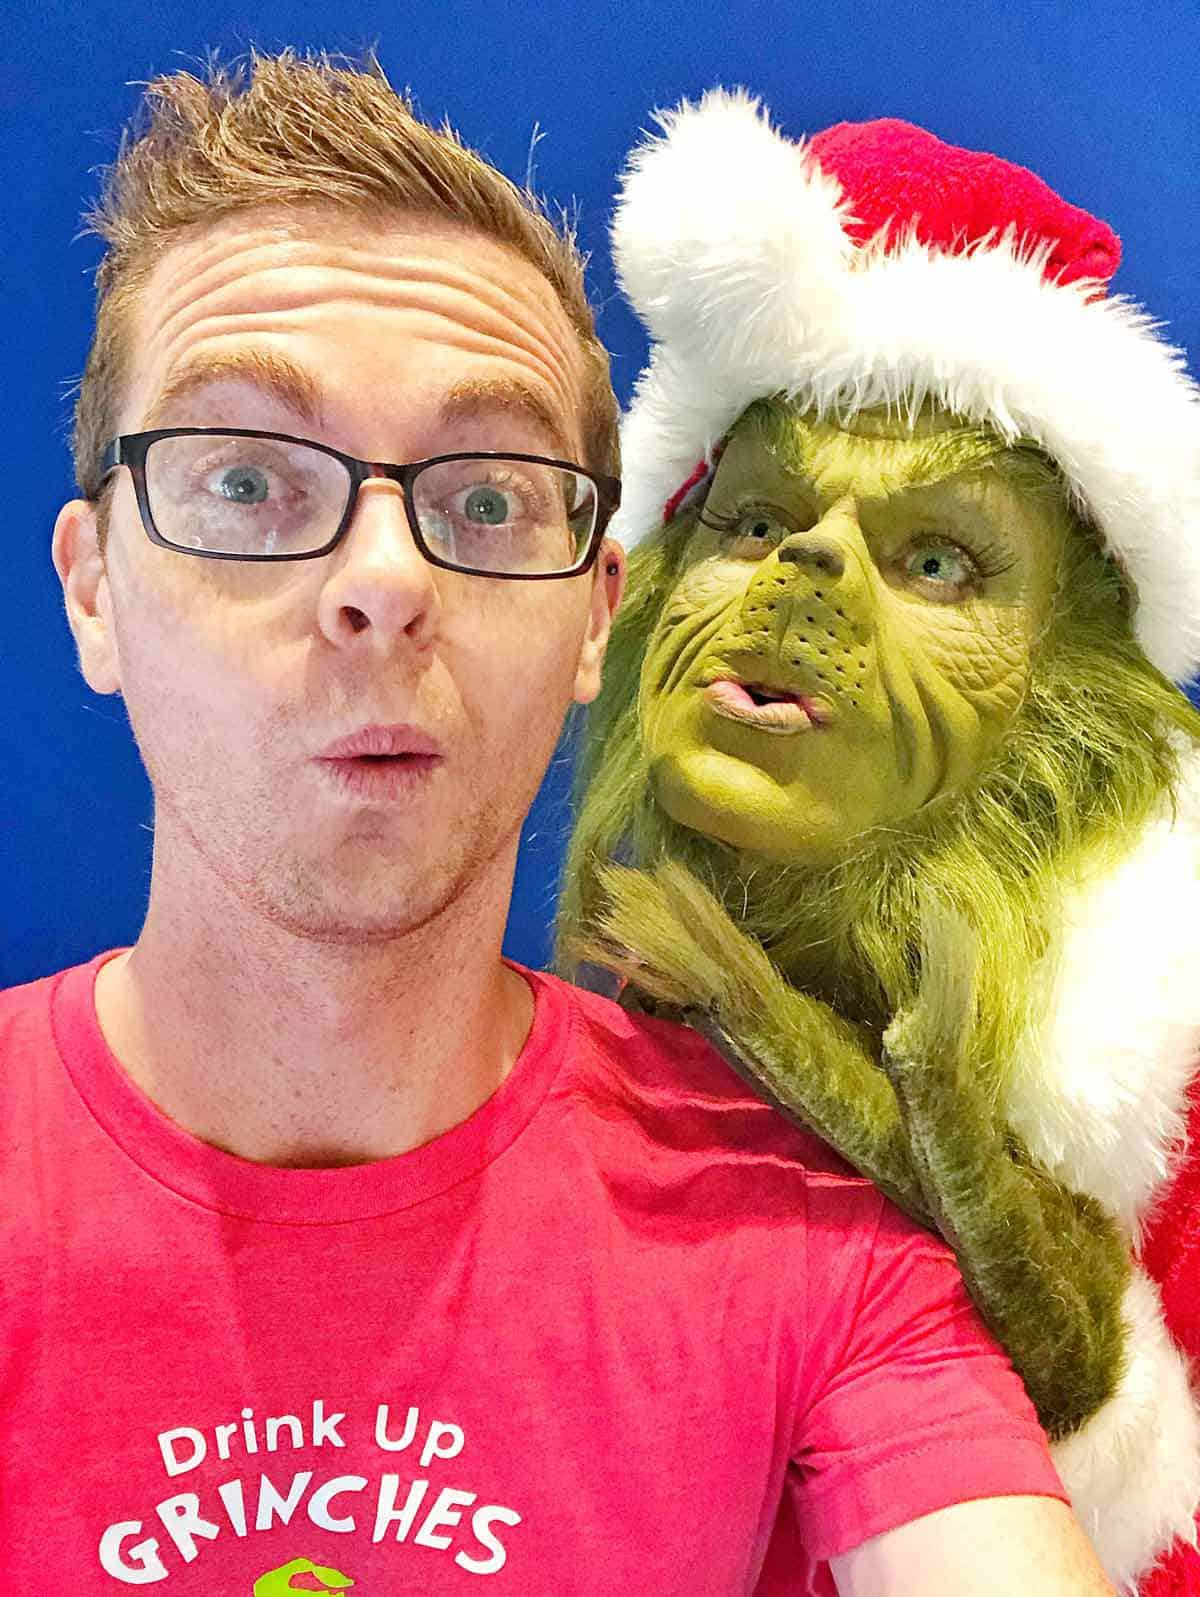 The-Grinch-in-real-life